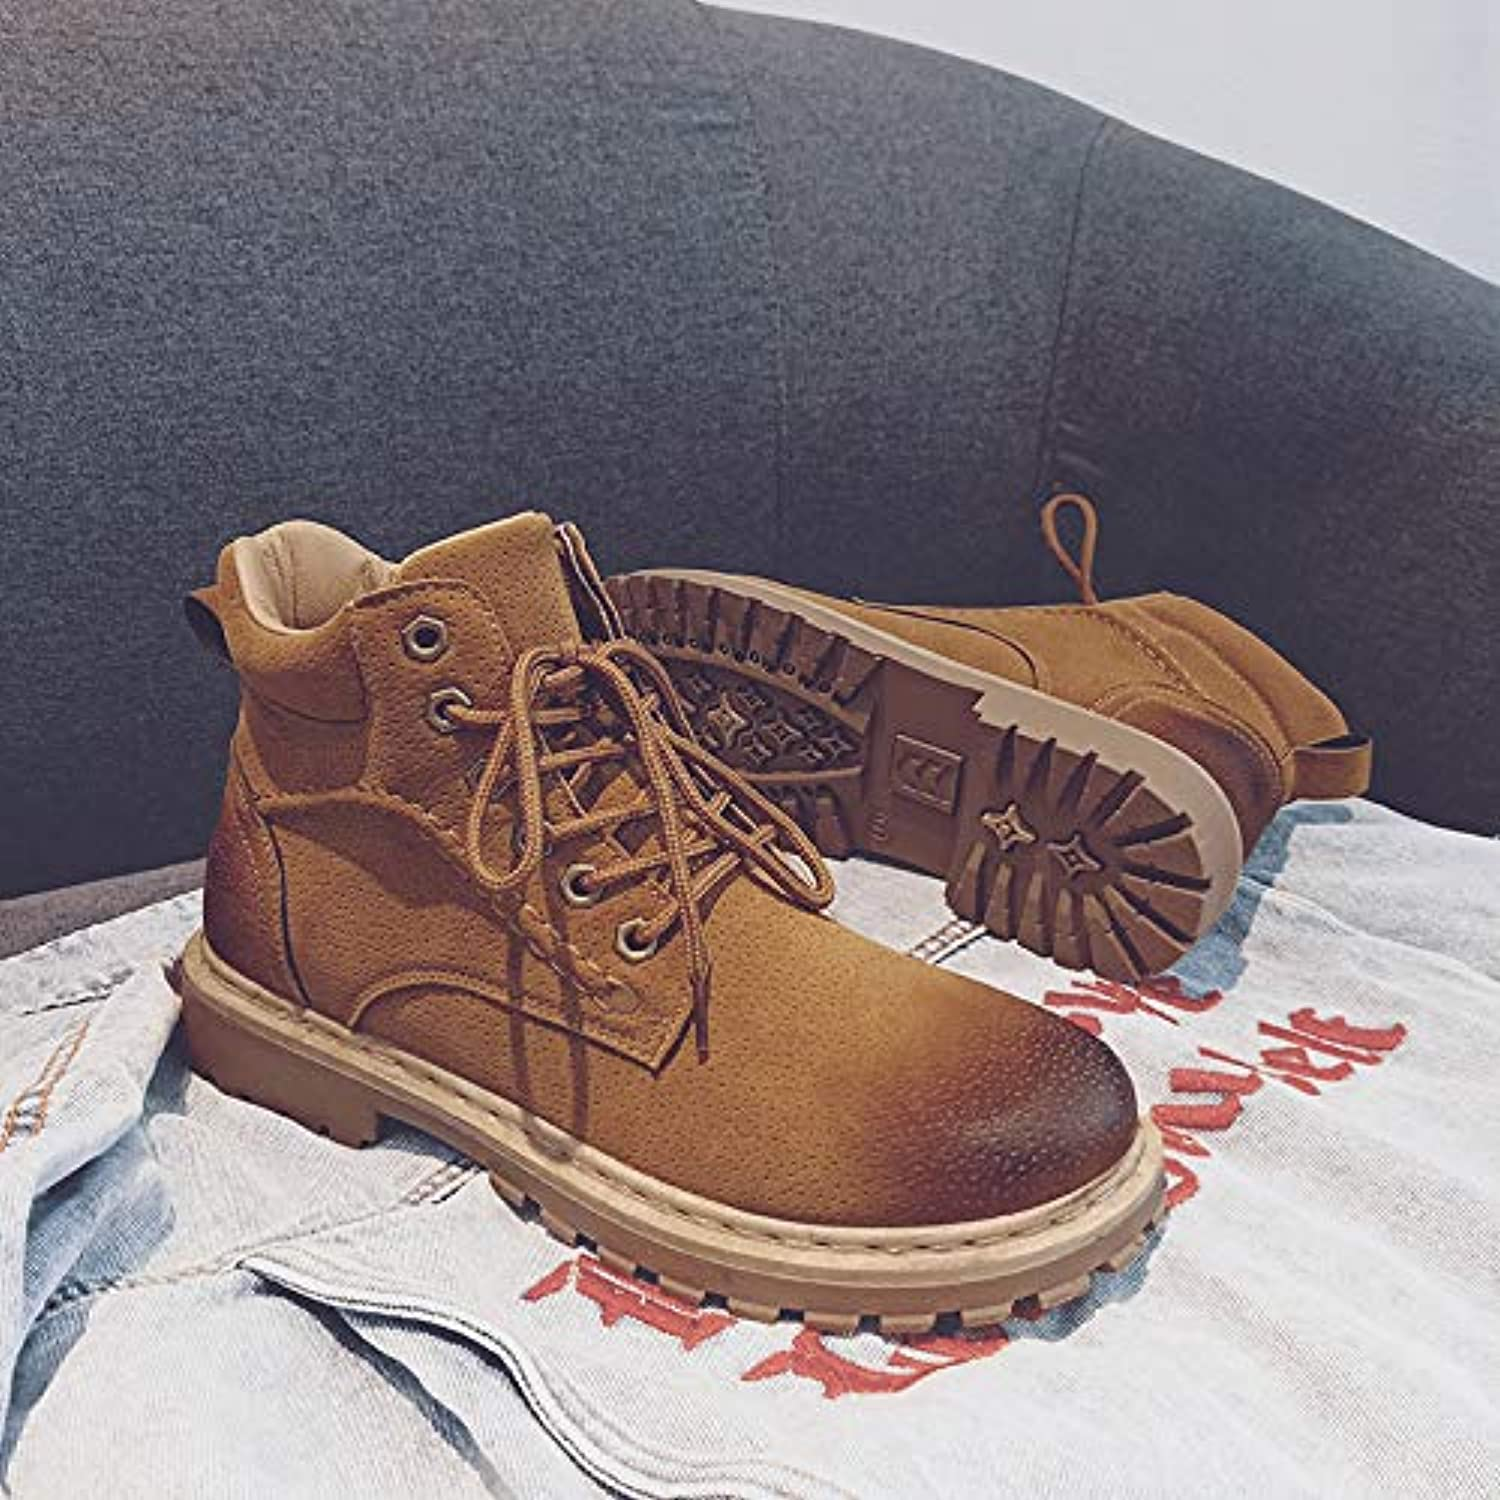 Shukun Men's boots Martin Boots Men'S High-Top Retro Personality Wild Boots Men'S Casual Outdoor Desert Boots Men